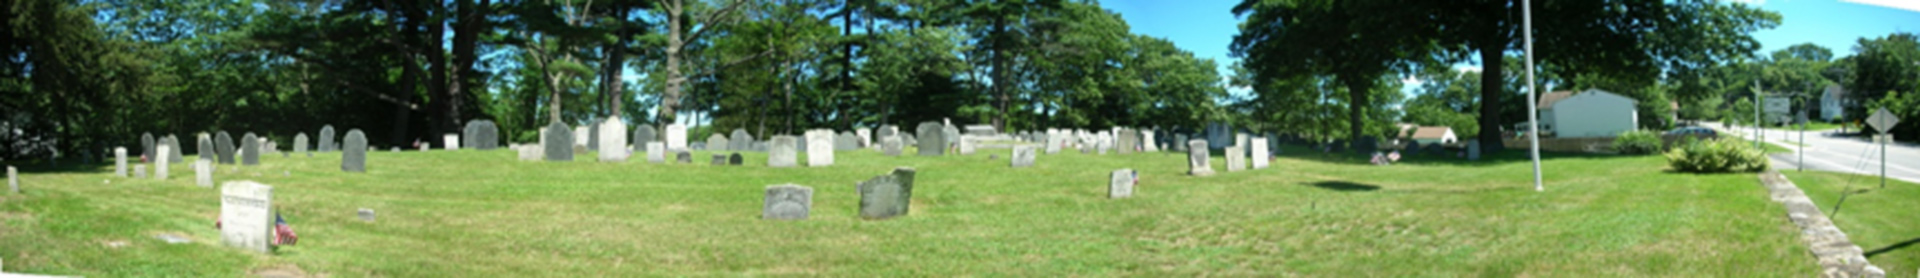 Thomas Tenney Monument Dedication – Bradford Burial Ground, Bradford, MA – 2009